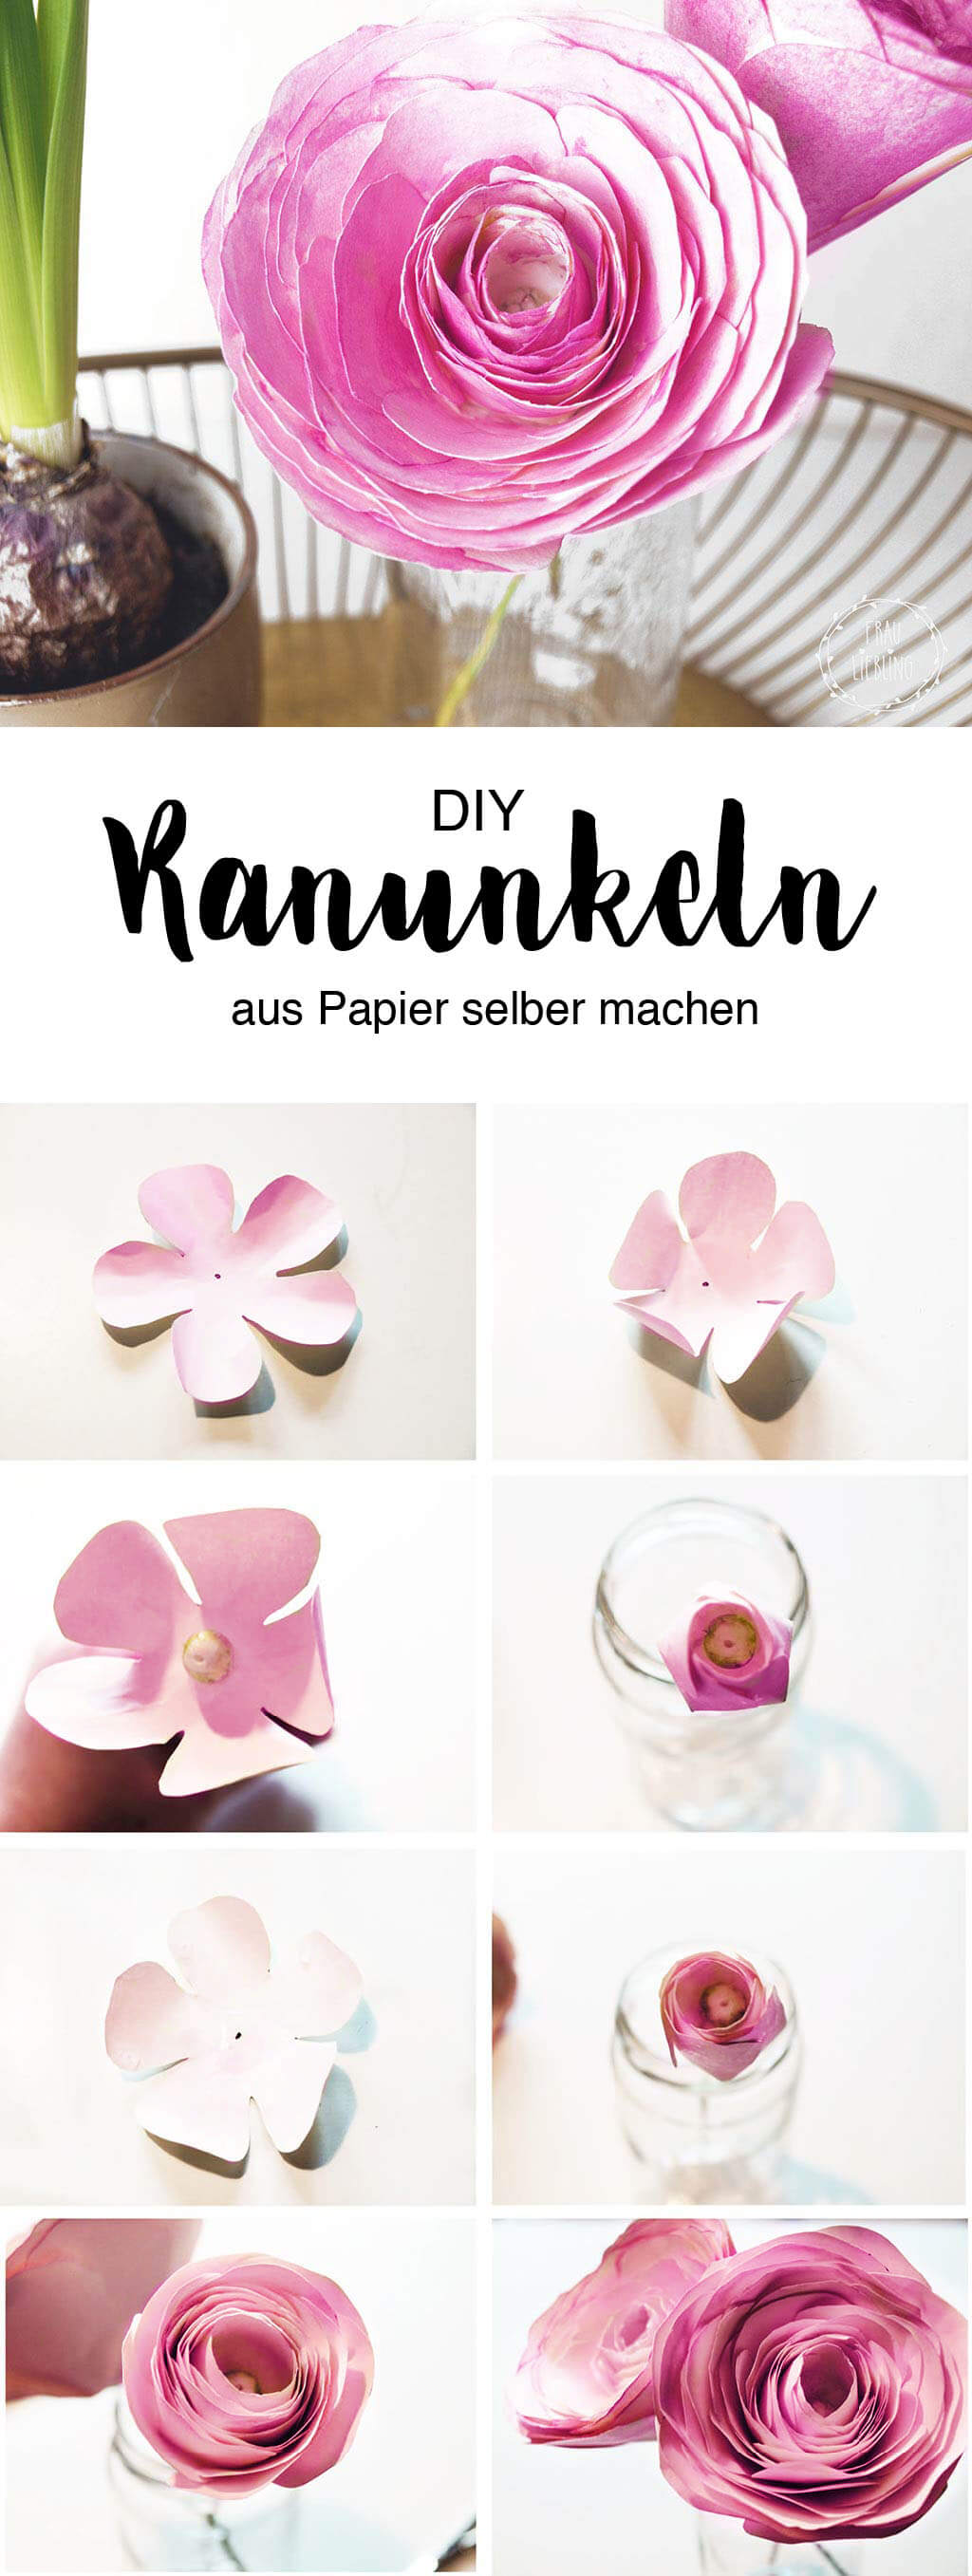 diy papierblumen sch ne ranunkeln ganz einfach selber machen. Black Bedroom Furniture Sets. Home Design Ideas